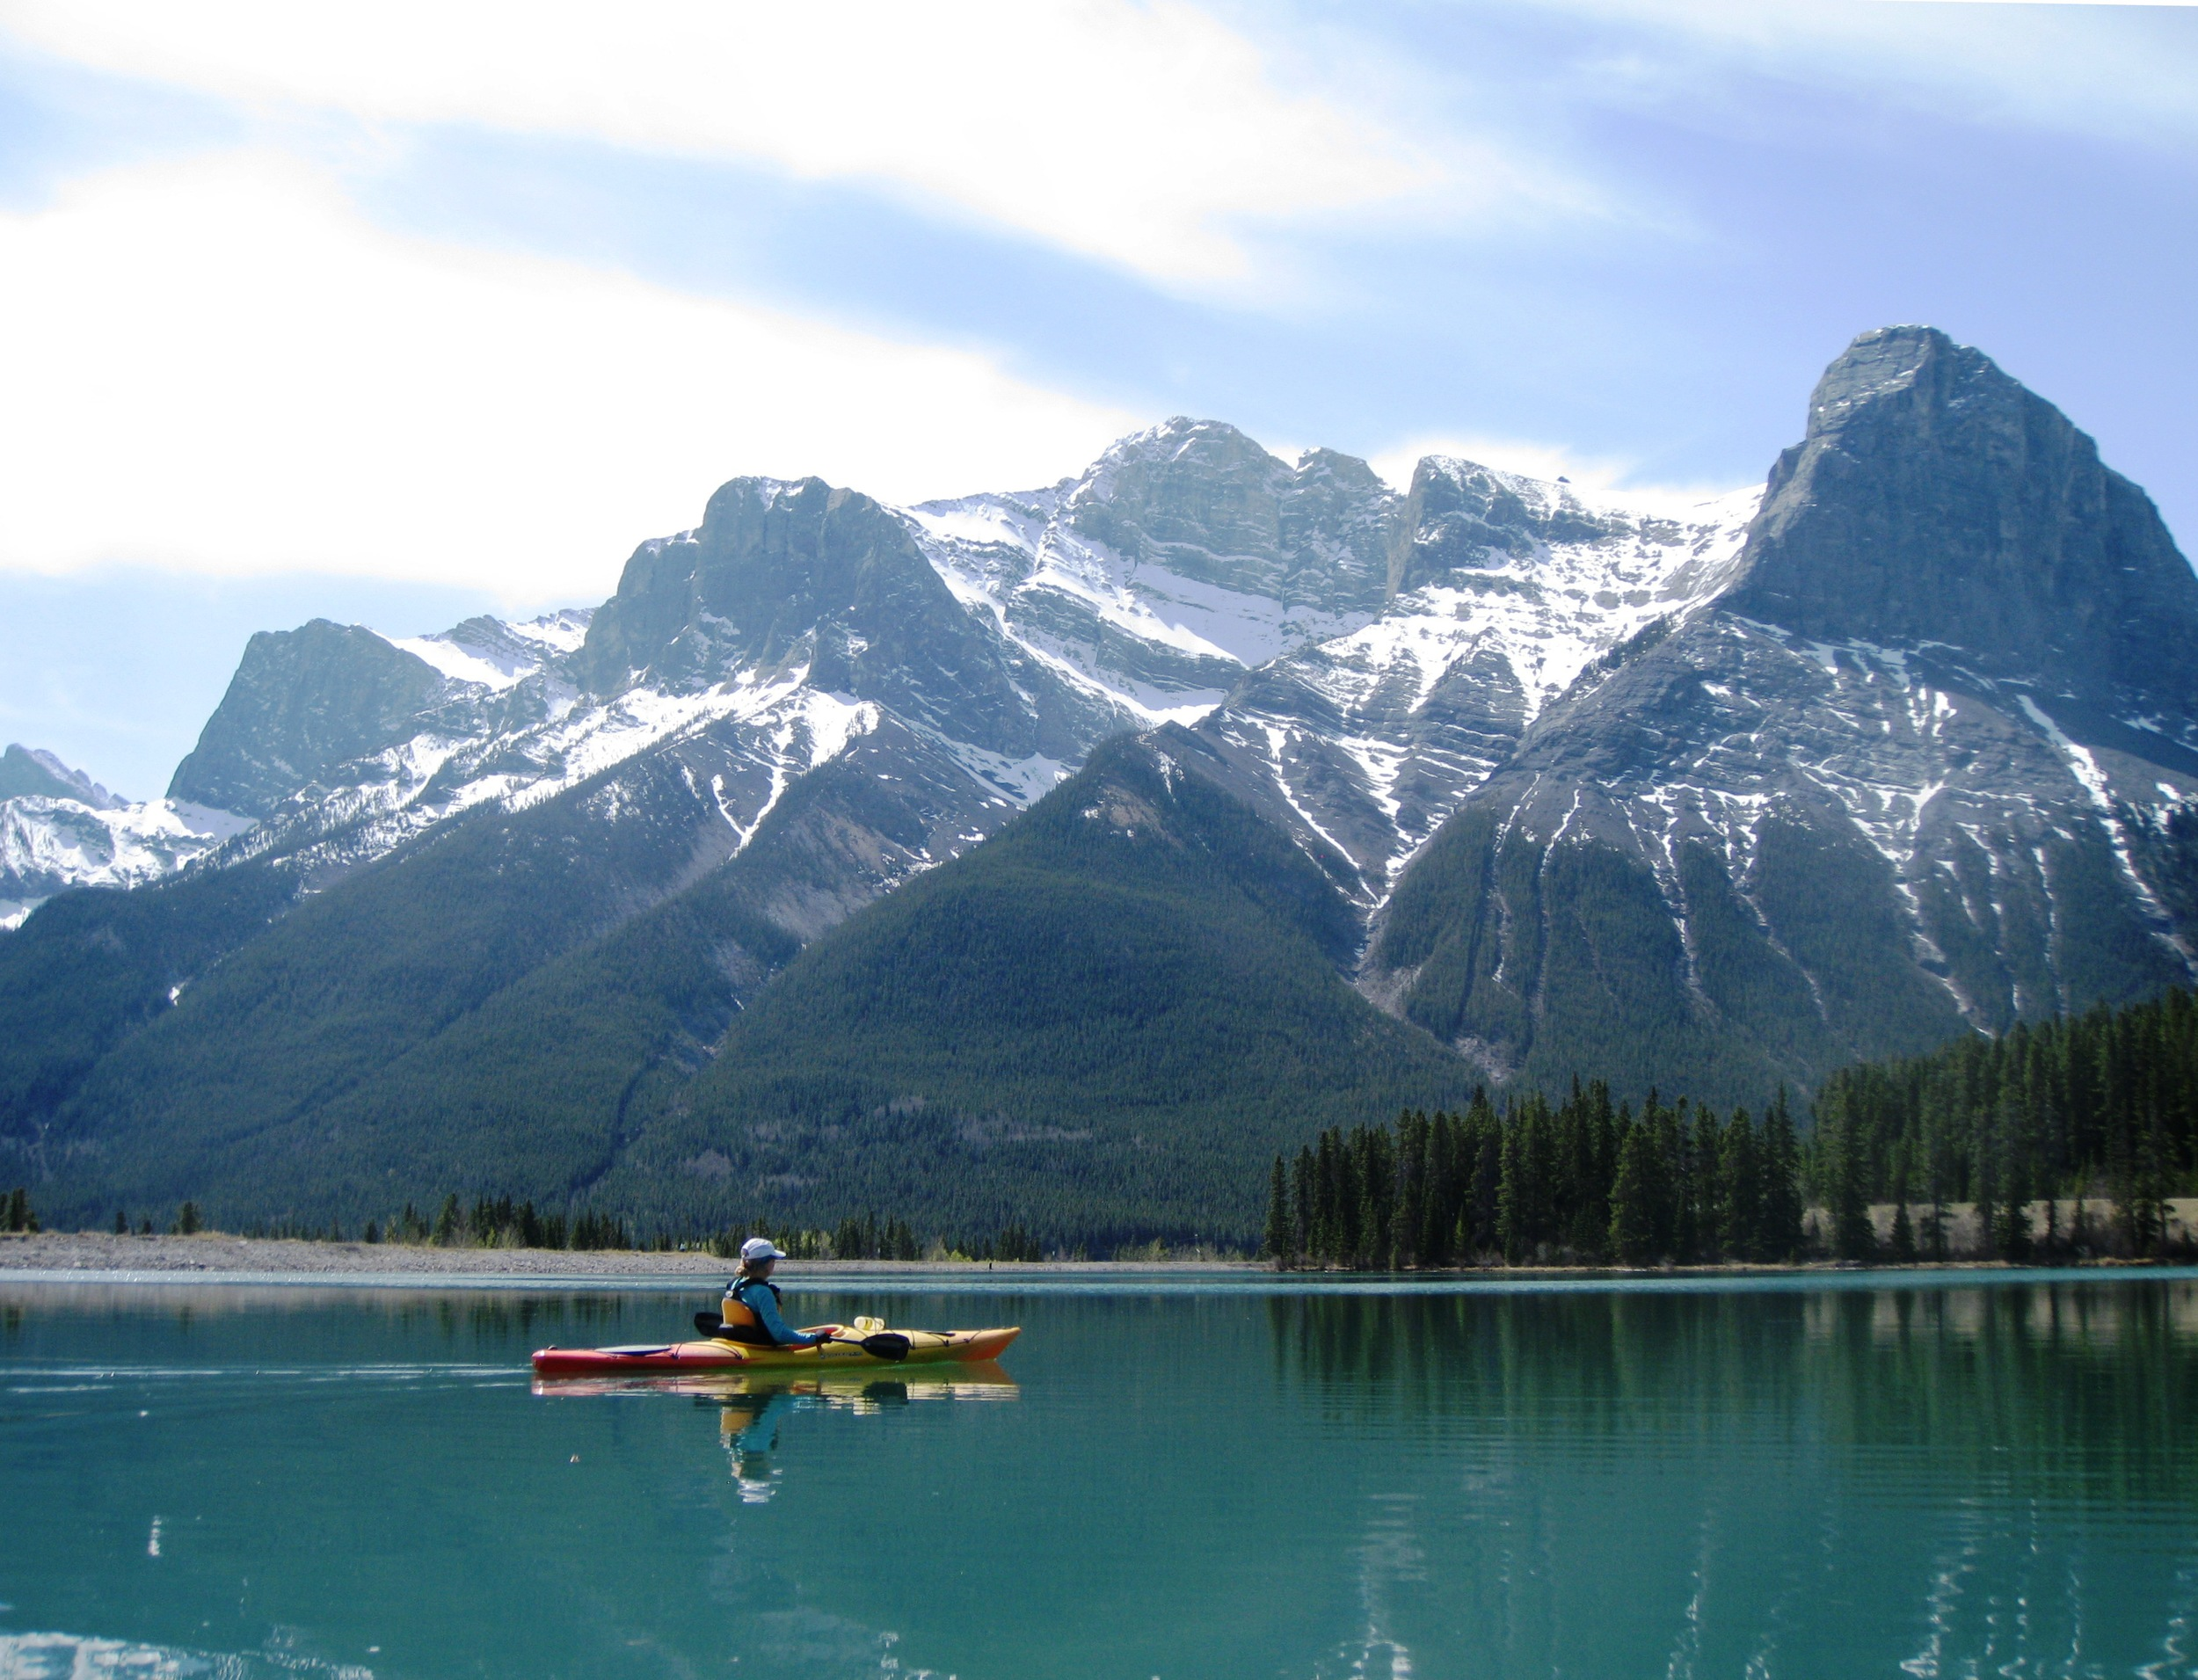 Forebay drifting, with Ha Ling and Lawrence Grassi peaks in the background